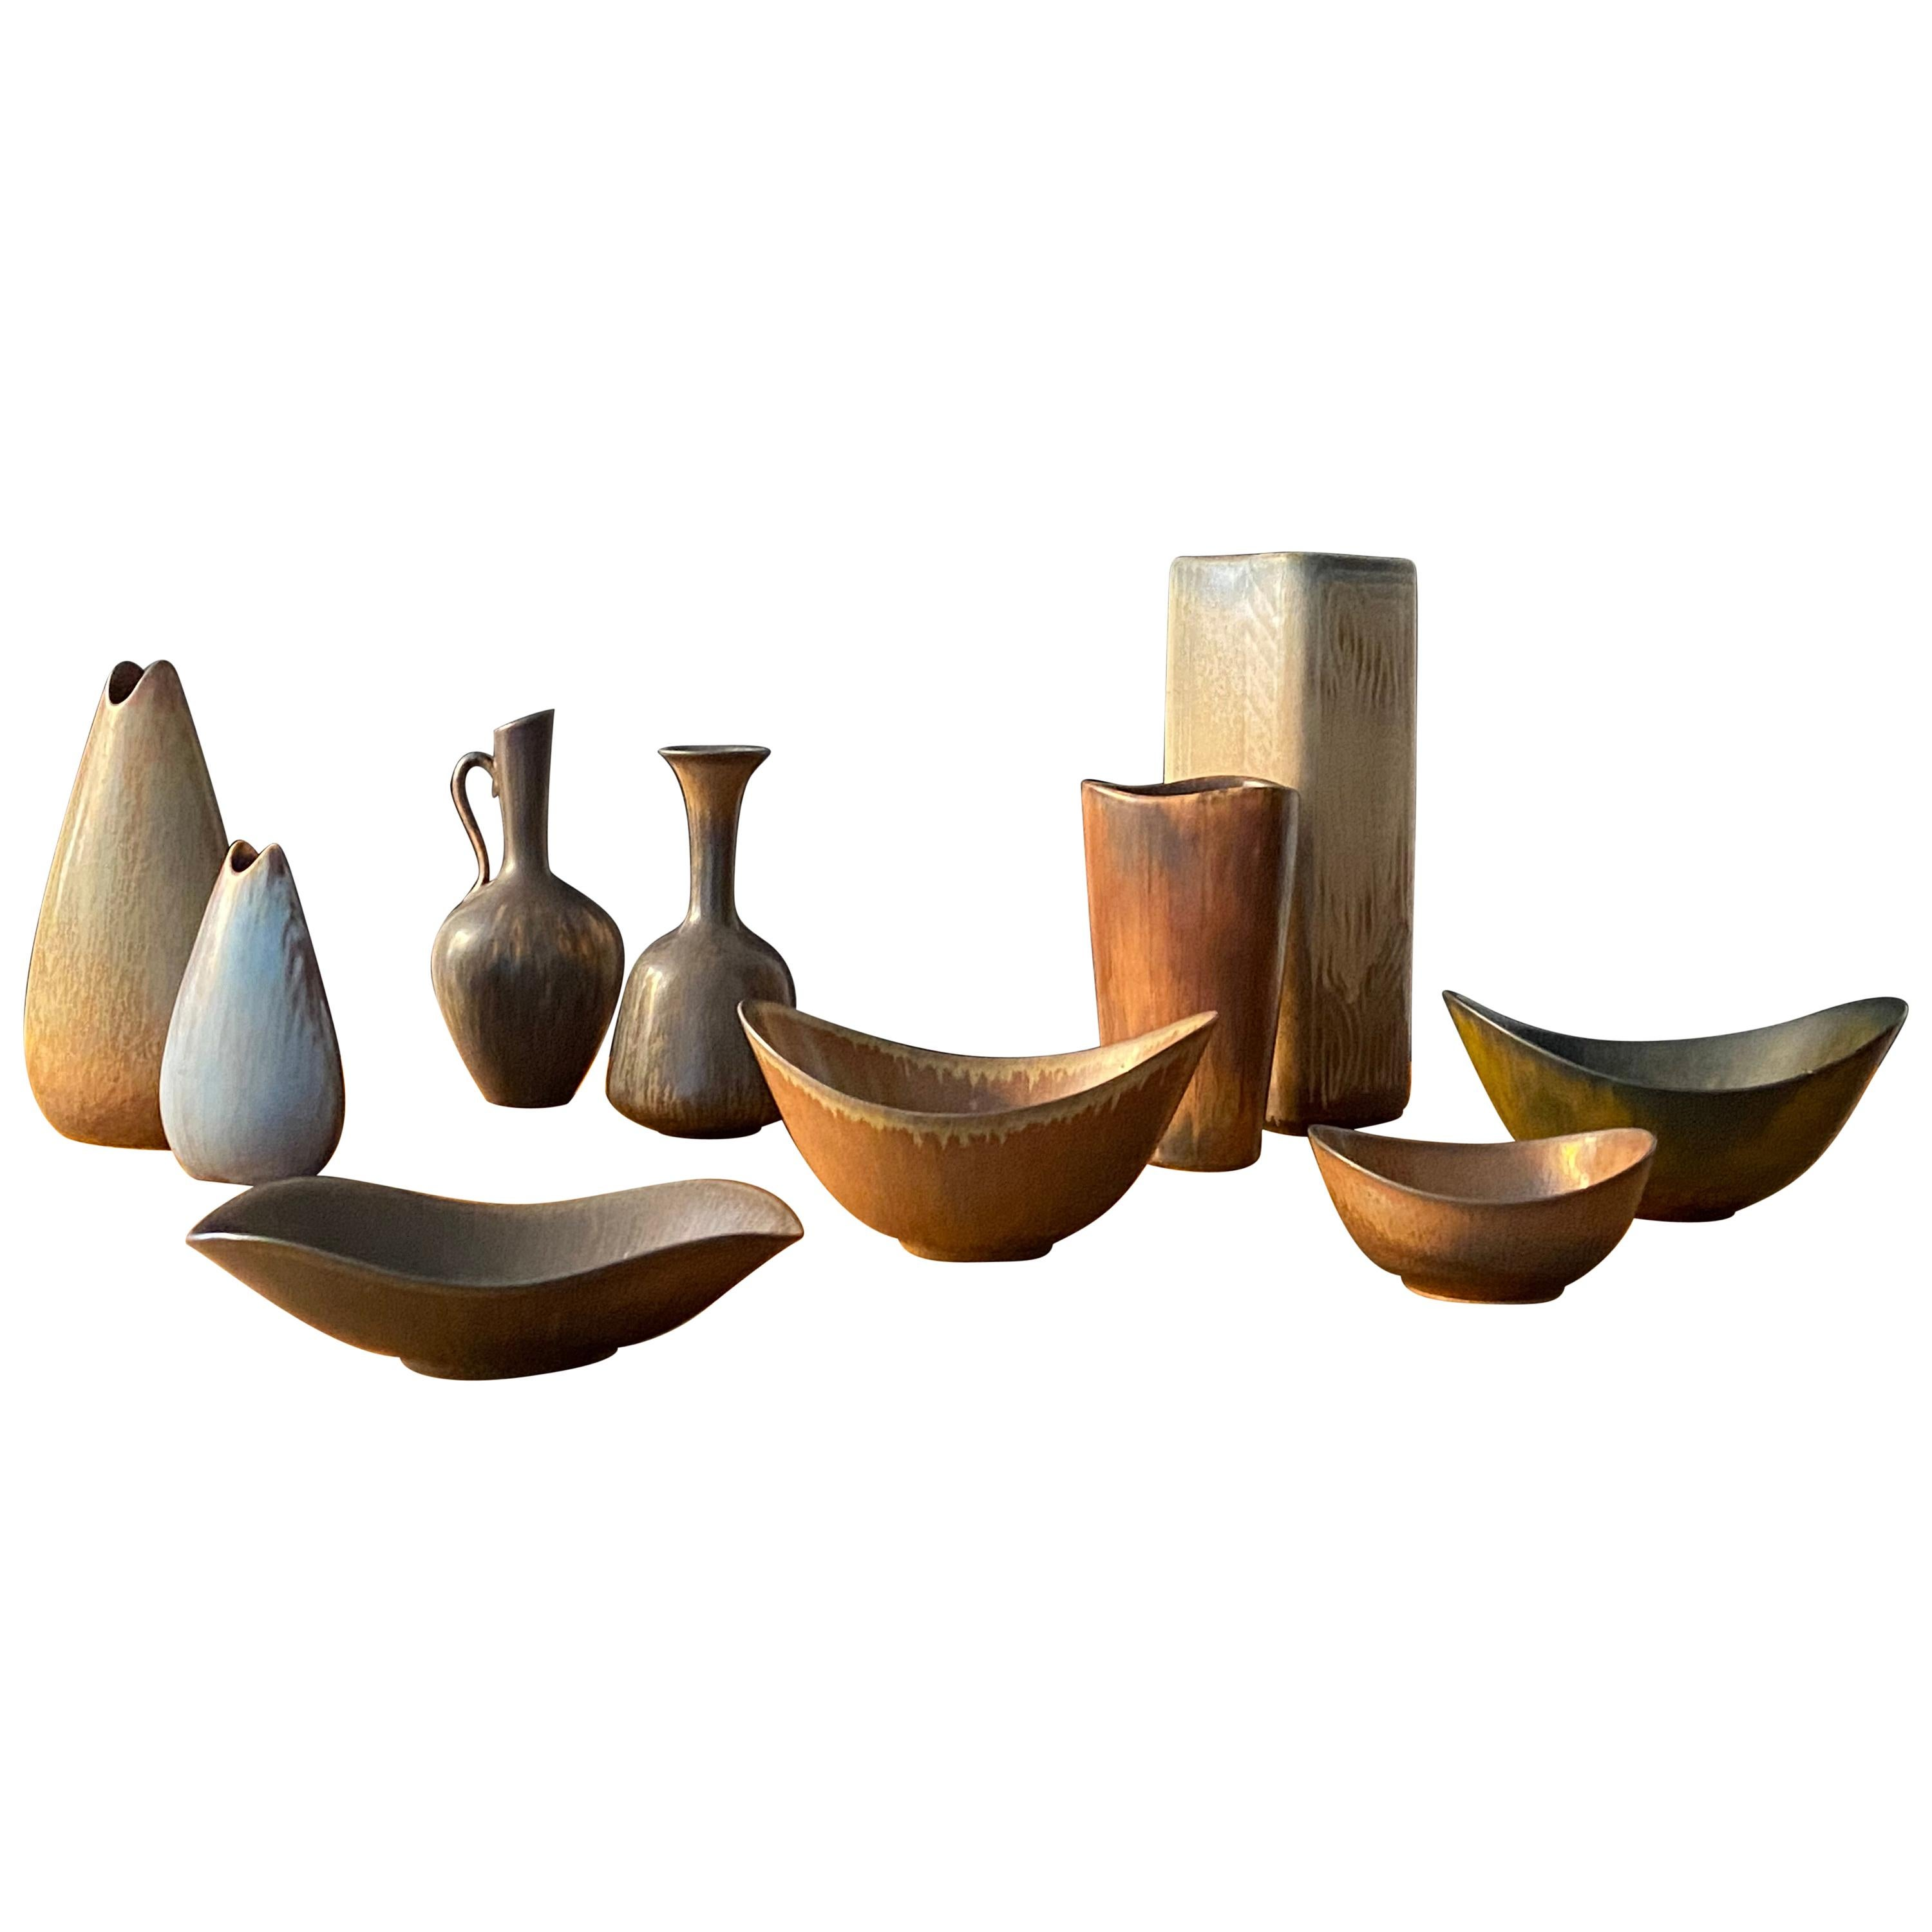 Gunnar Nylund, Collection of Stoneware Vases and Bowls, Rörstand, Sweden, 1940s